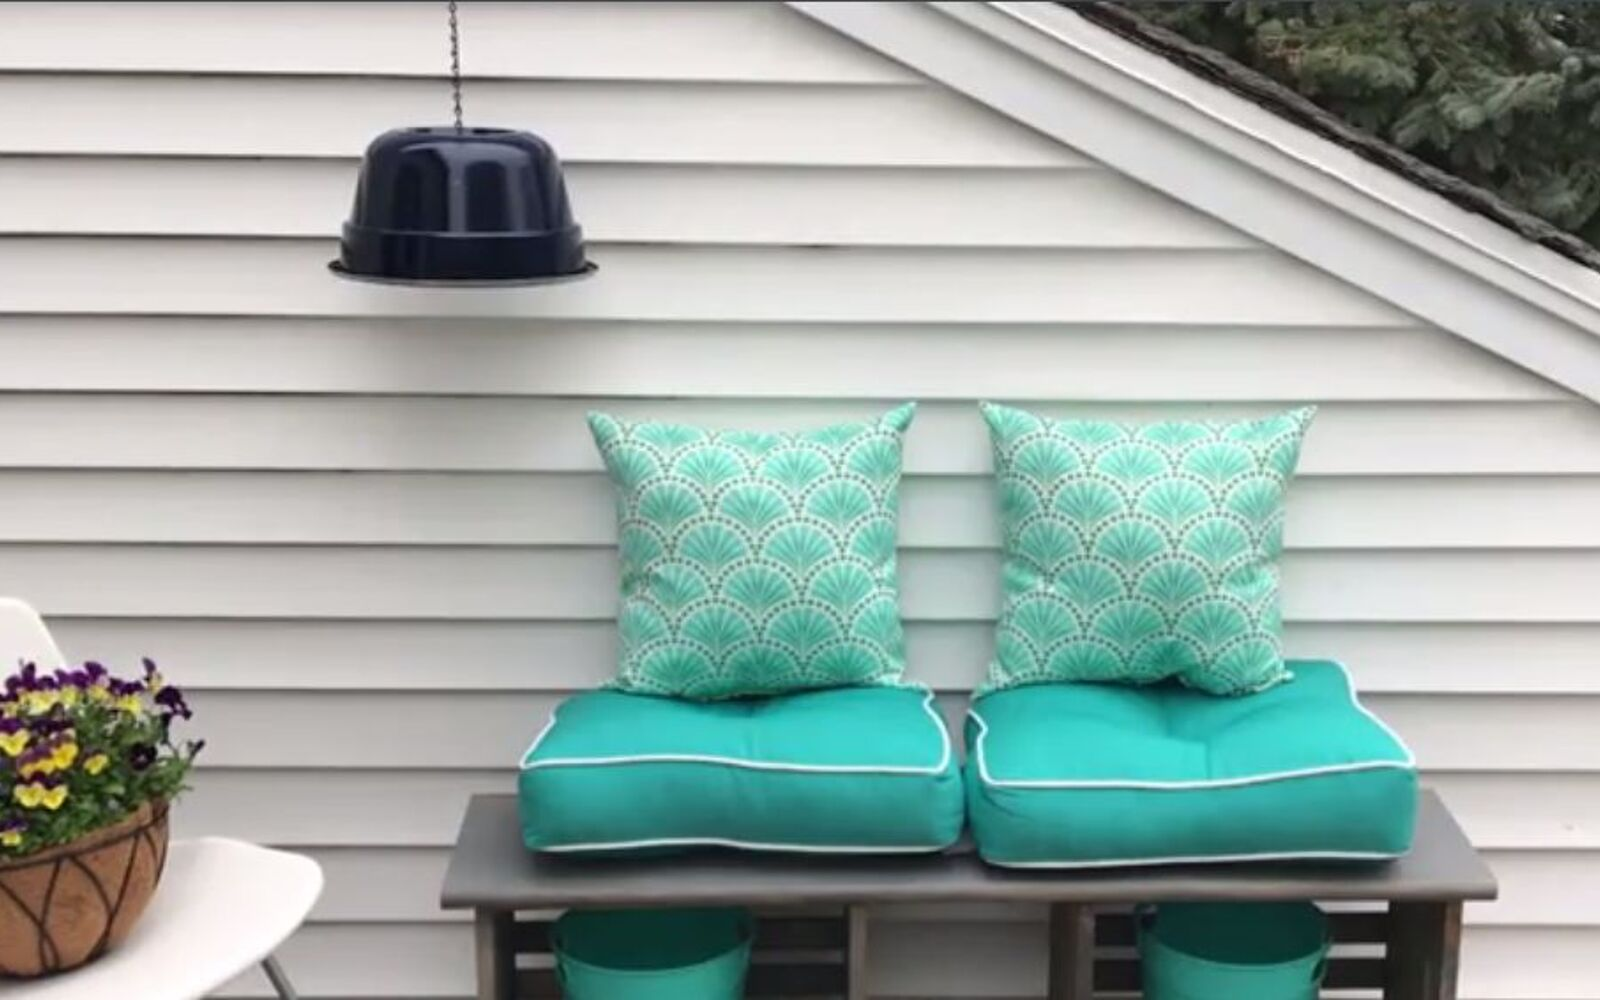 s 15 decorative ways your family can pretty up your patio, Have A 2 Patio Light